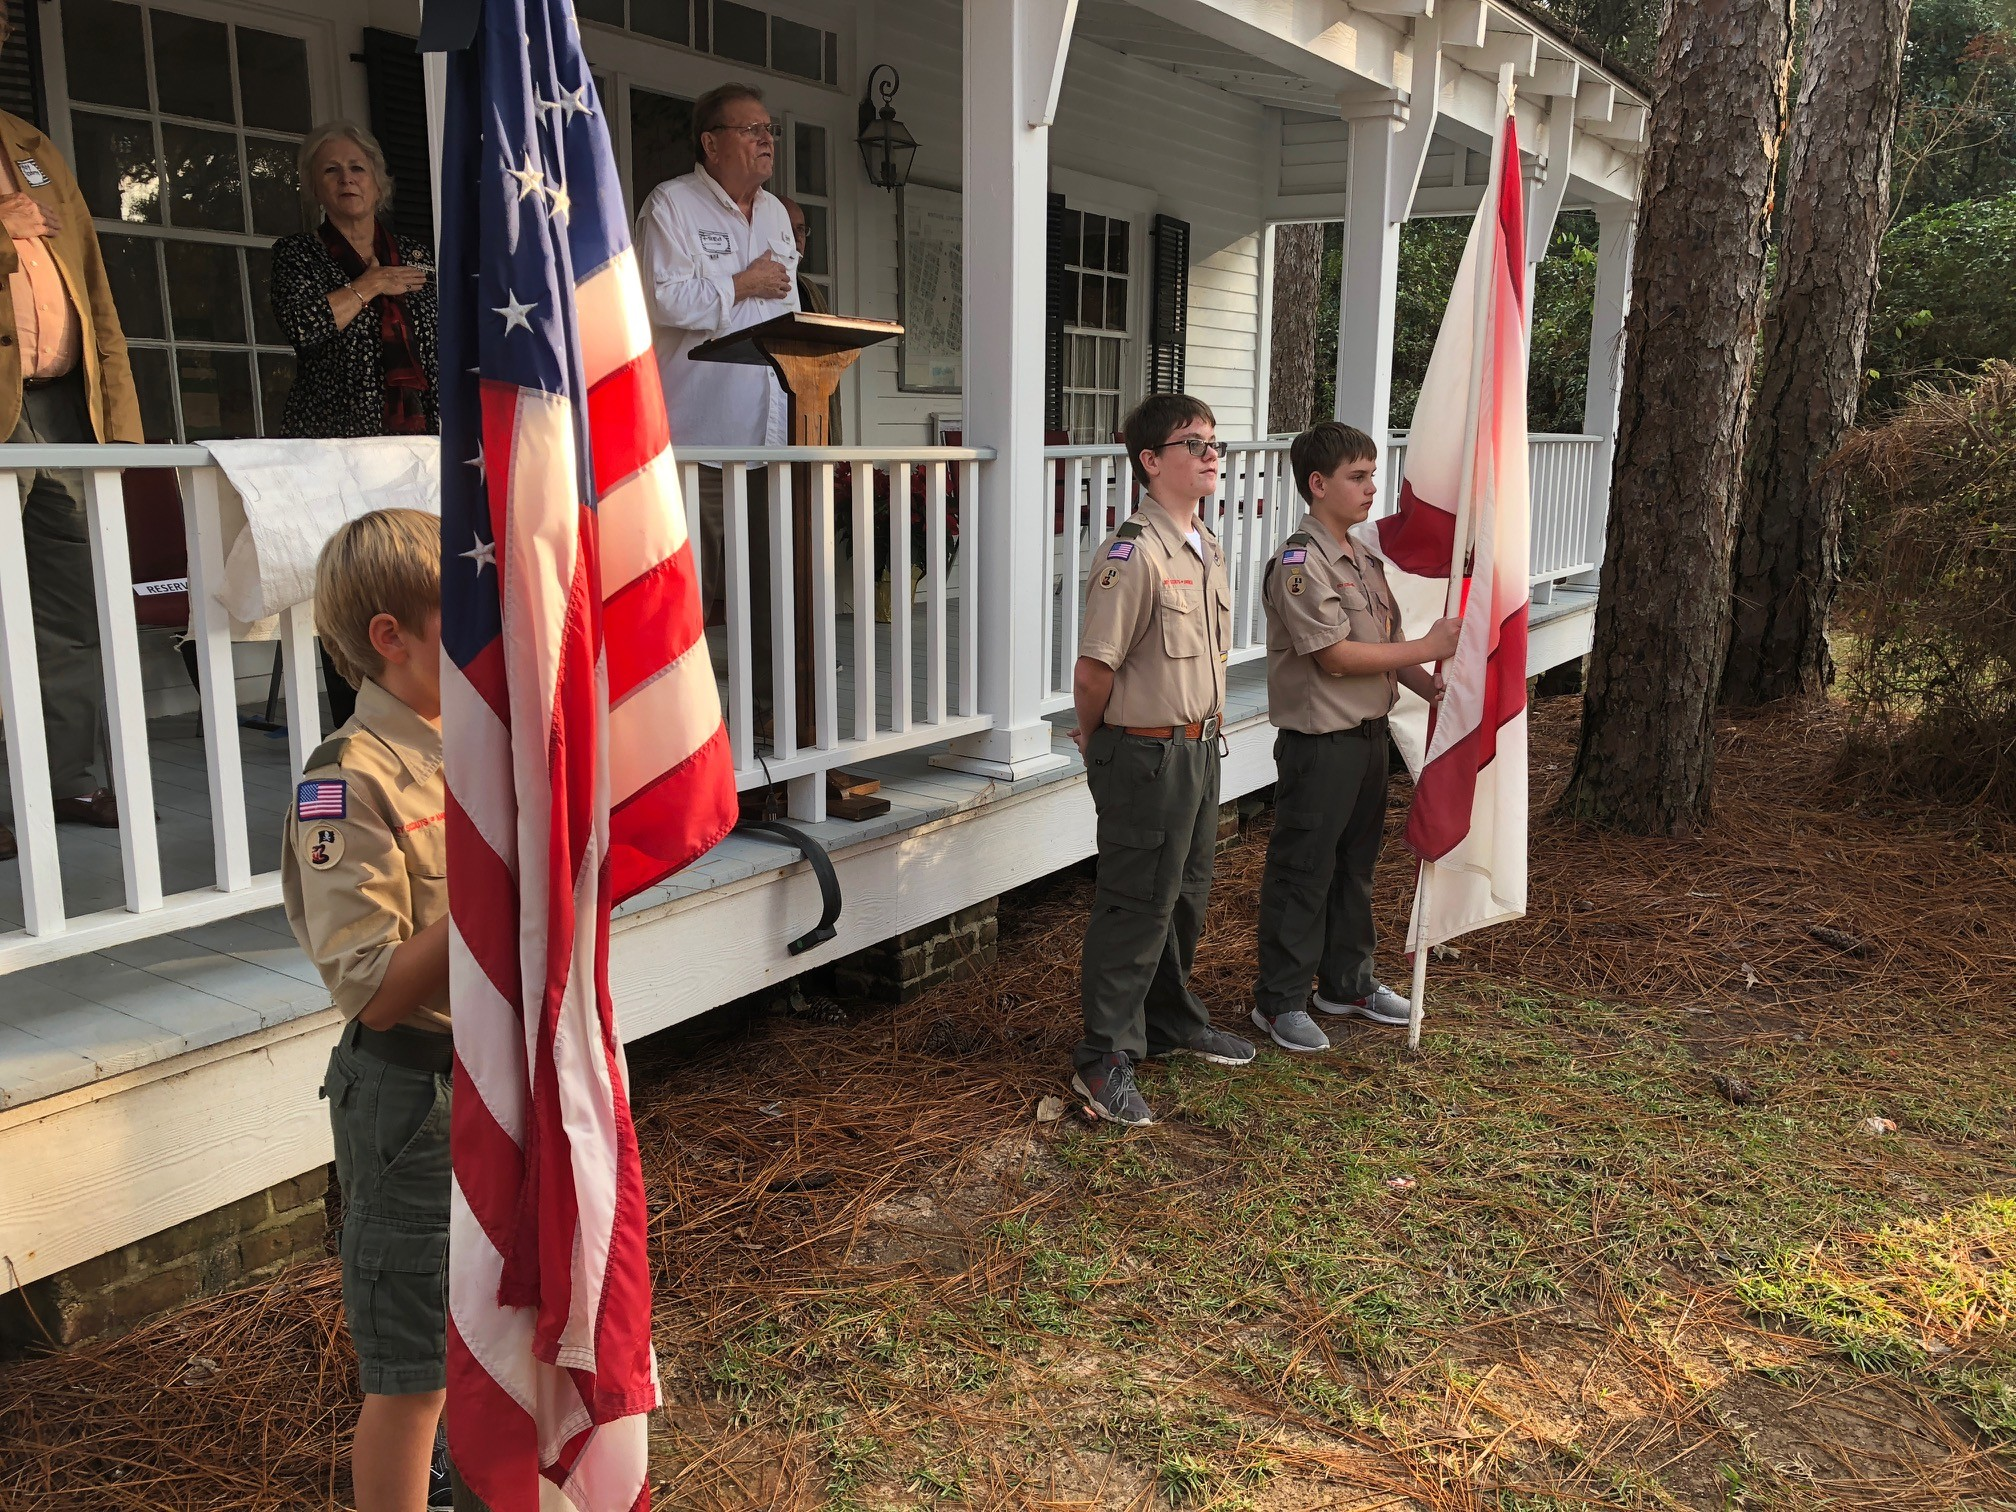 Fairhope's Boy Scout Troop 47 presented the colors at the event.